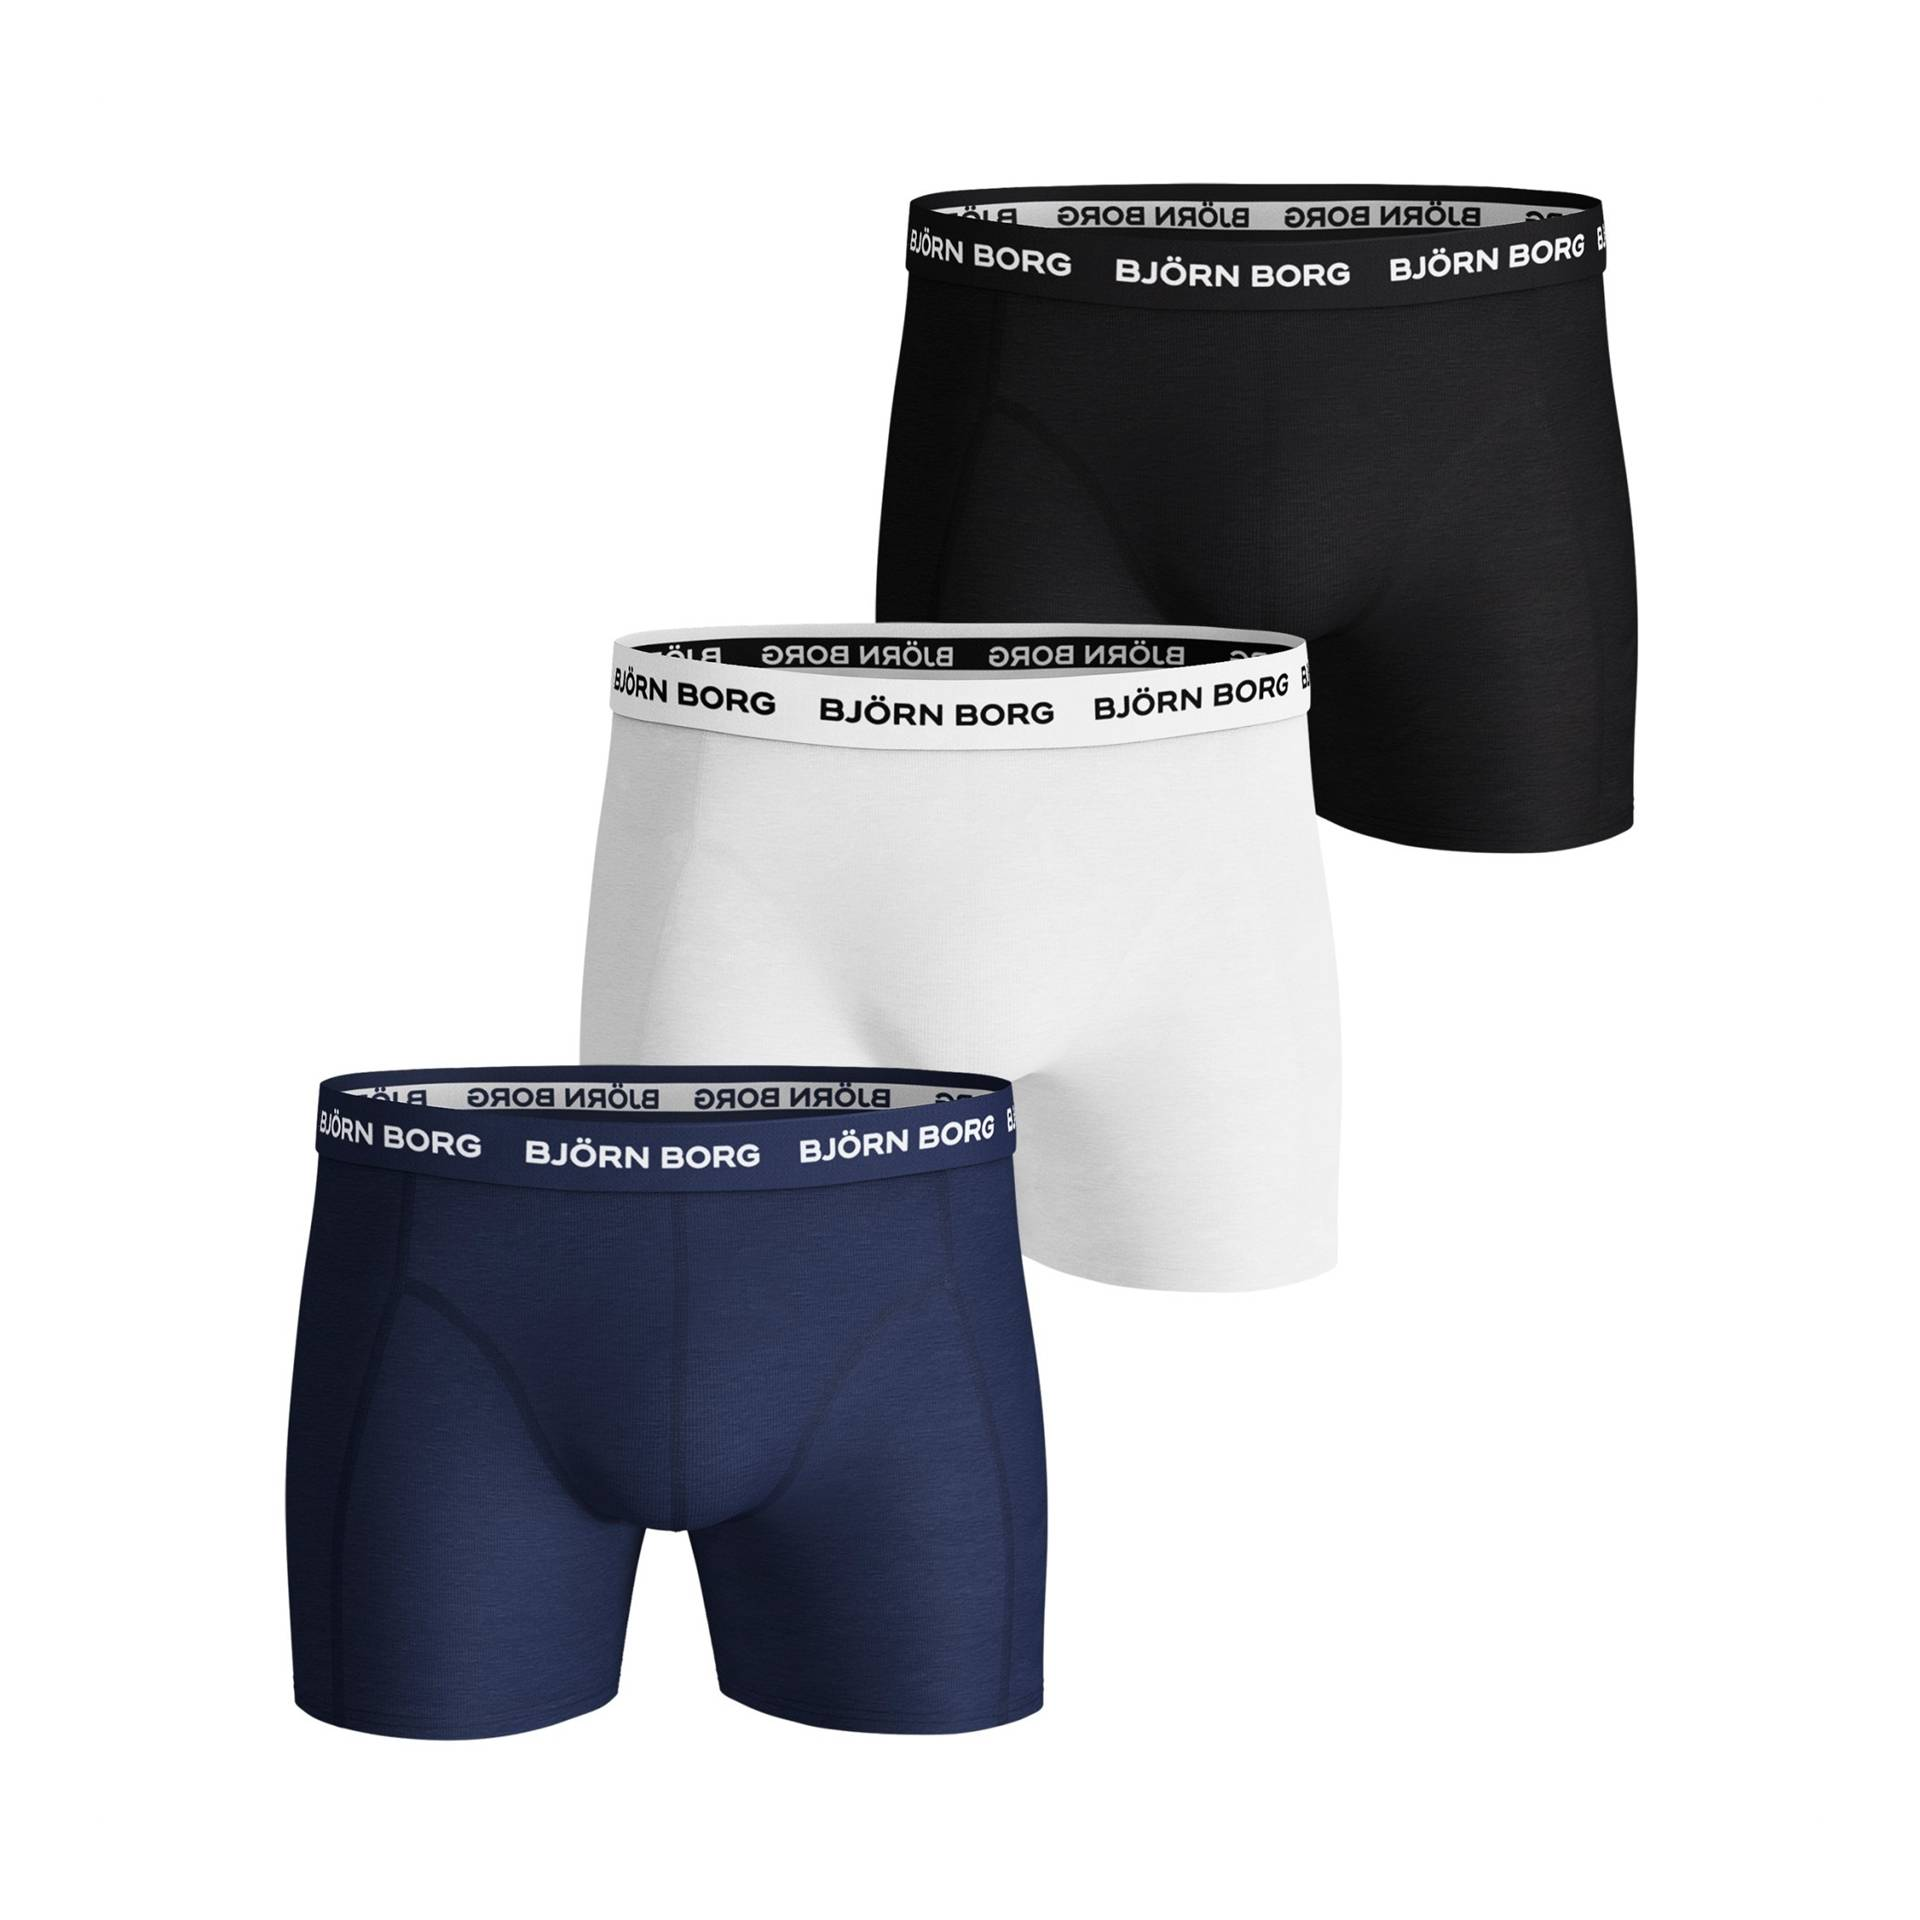 Björn Borg NOOS Solid Shorts Blue Depths 3-pack XL